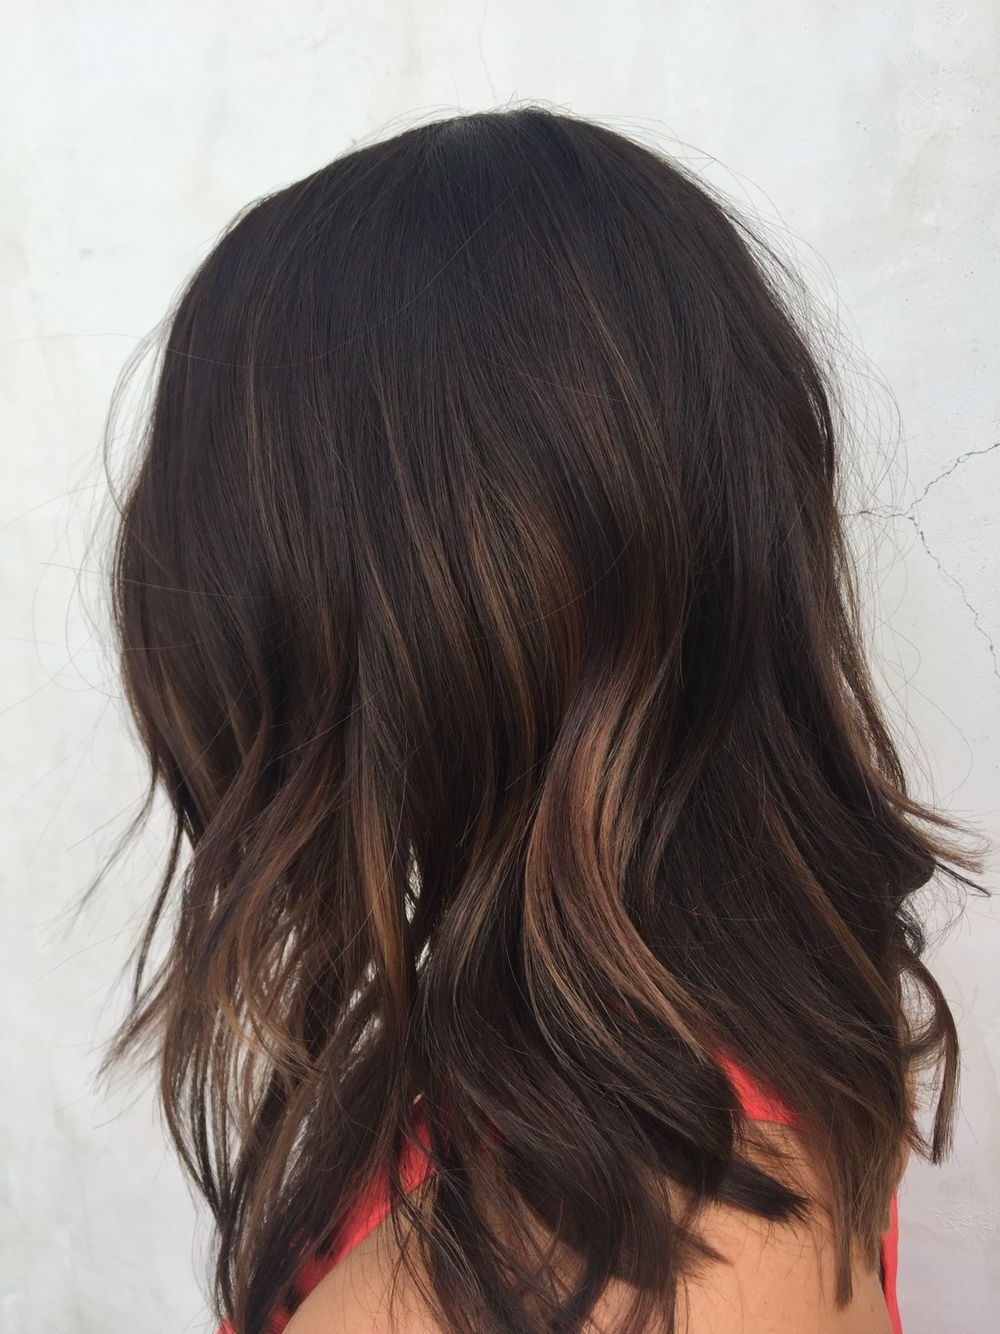 Subtle Balayage /soft Interior Layering | Beauty Dept | Pinterest Pertaining To Newest Piece Y Haircuts With Subtle Balayage (View 8 of 15)